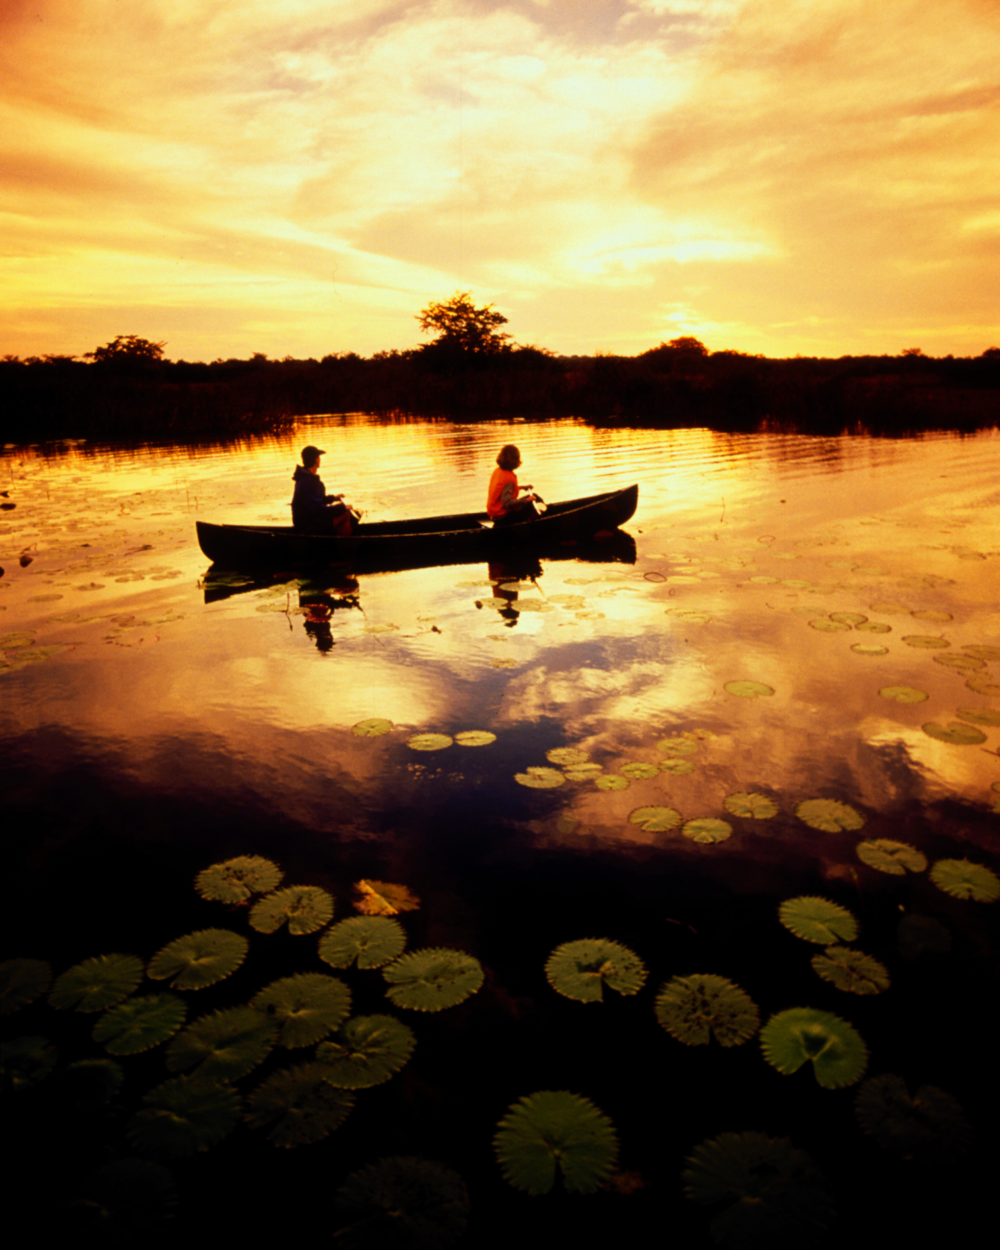 Northern Belize's diverse wetlands are home to an array of spectacular wildlife, Photo: Lamanai Outpost lodge